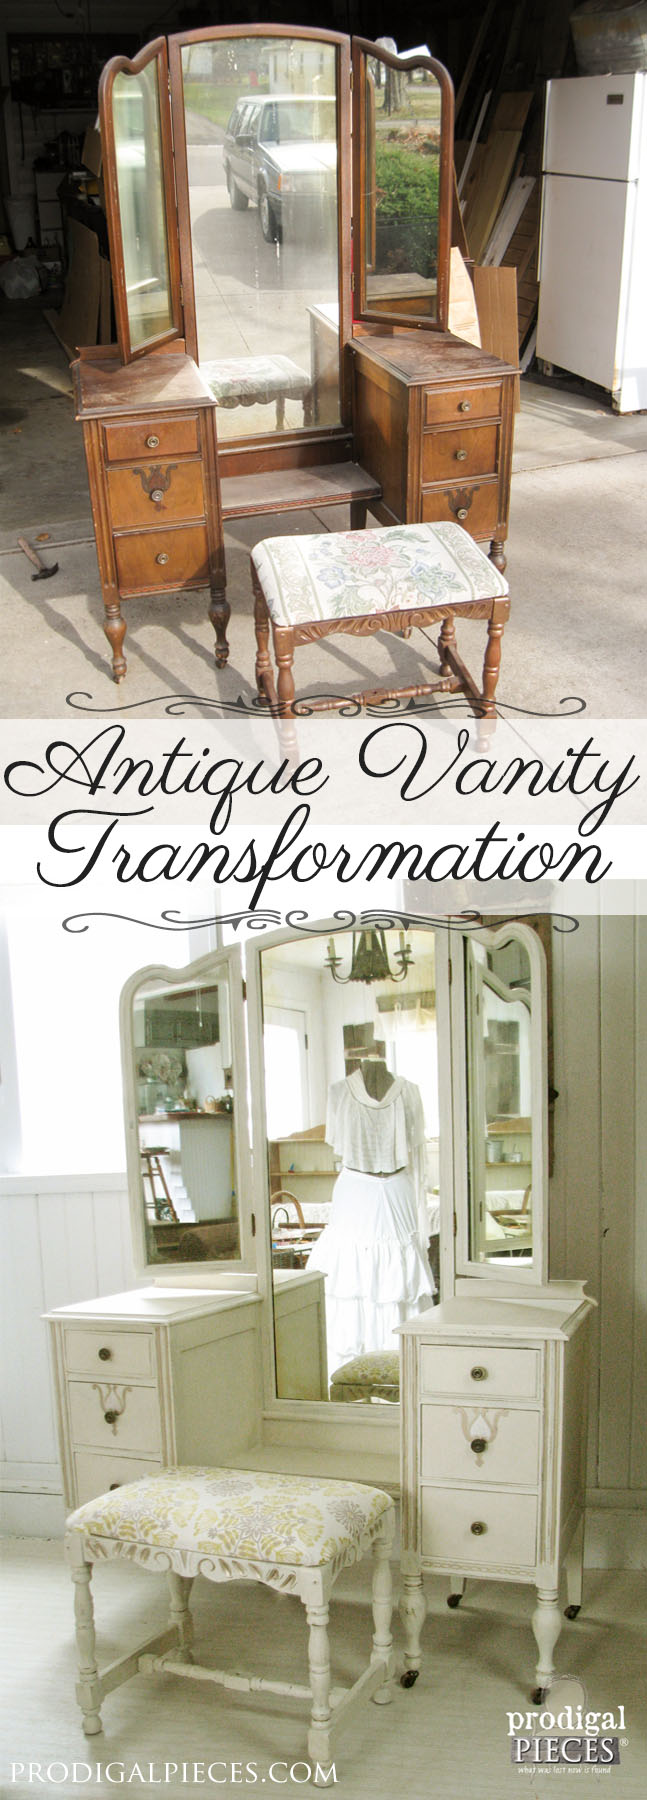 An Antique Vanity Transformation by Prodigal Pieces | www.prodigalpieces.com